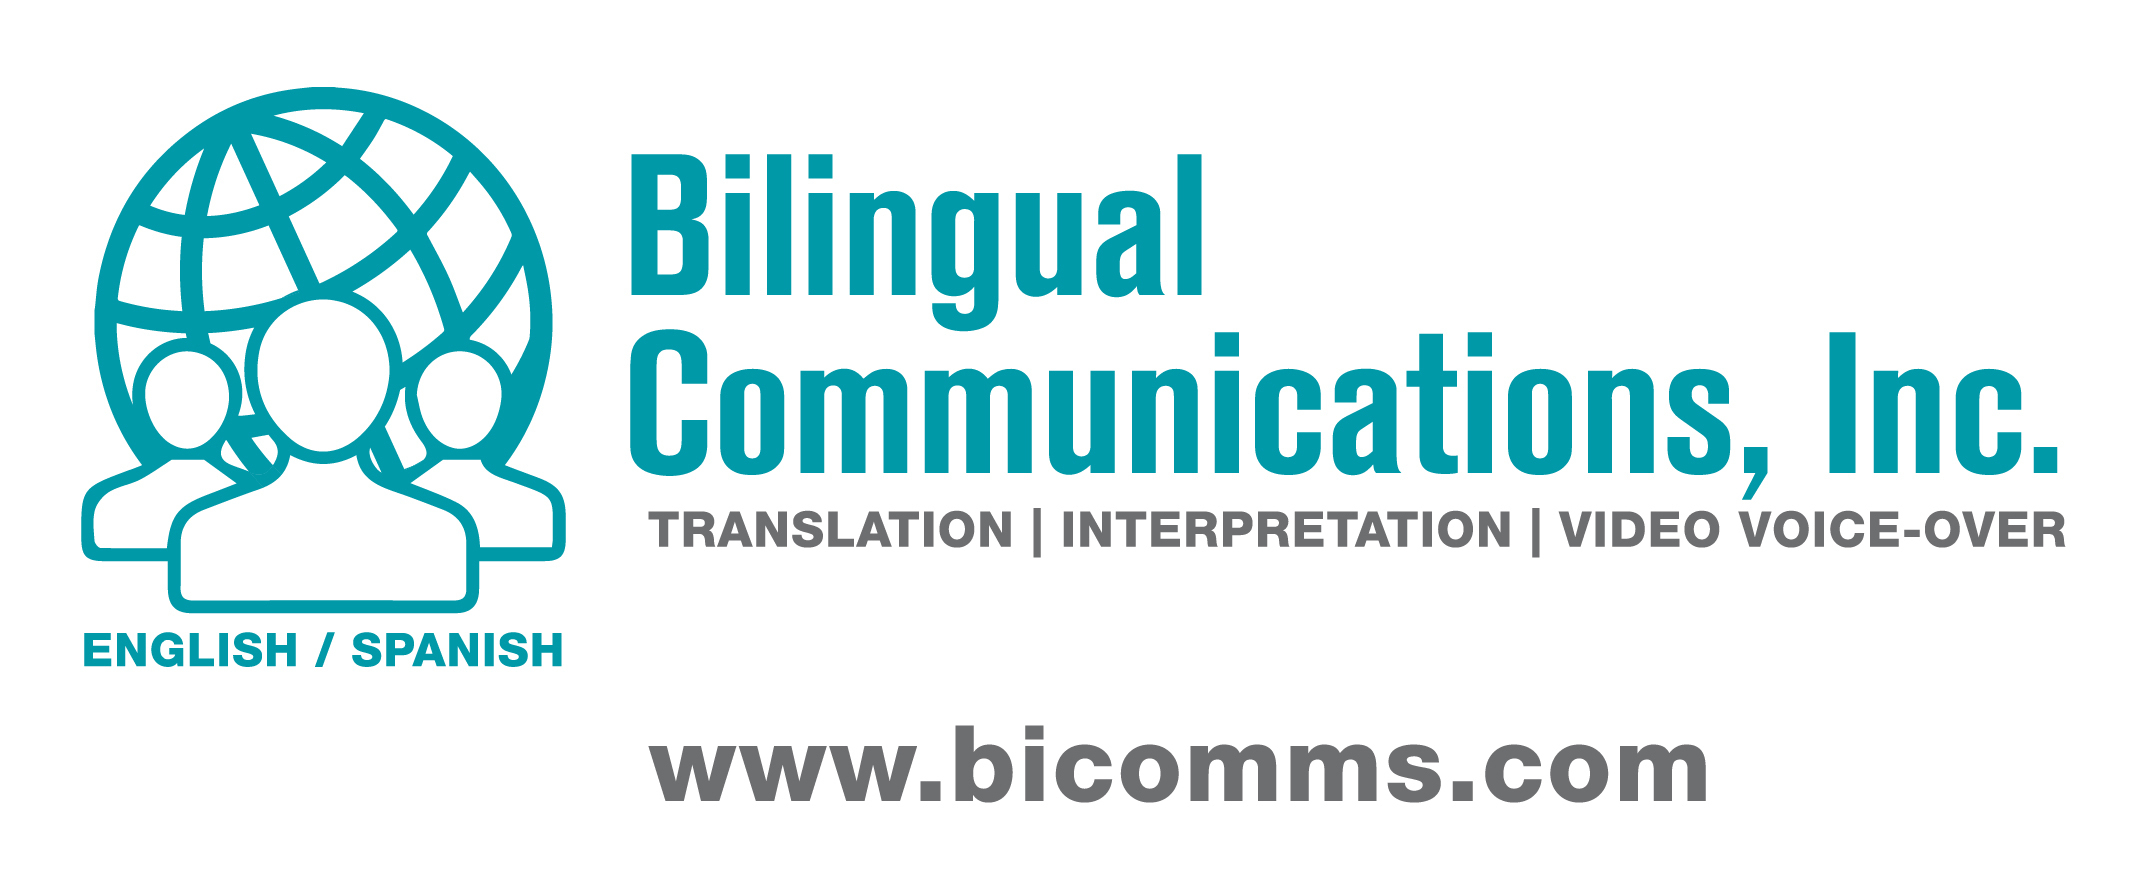 Bilingual Communications, Inc.